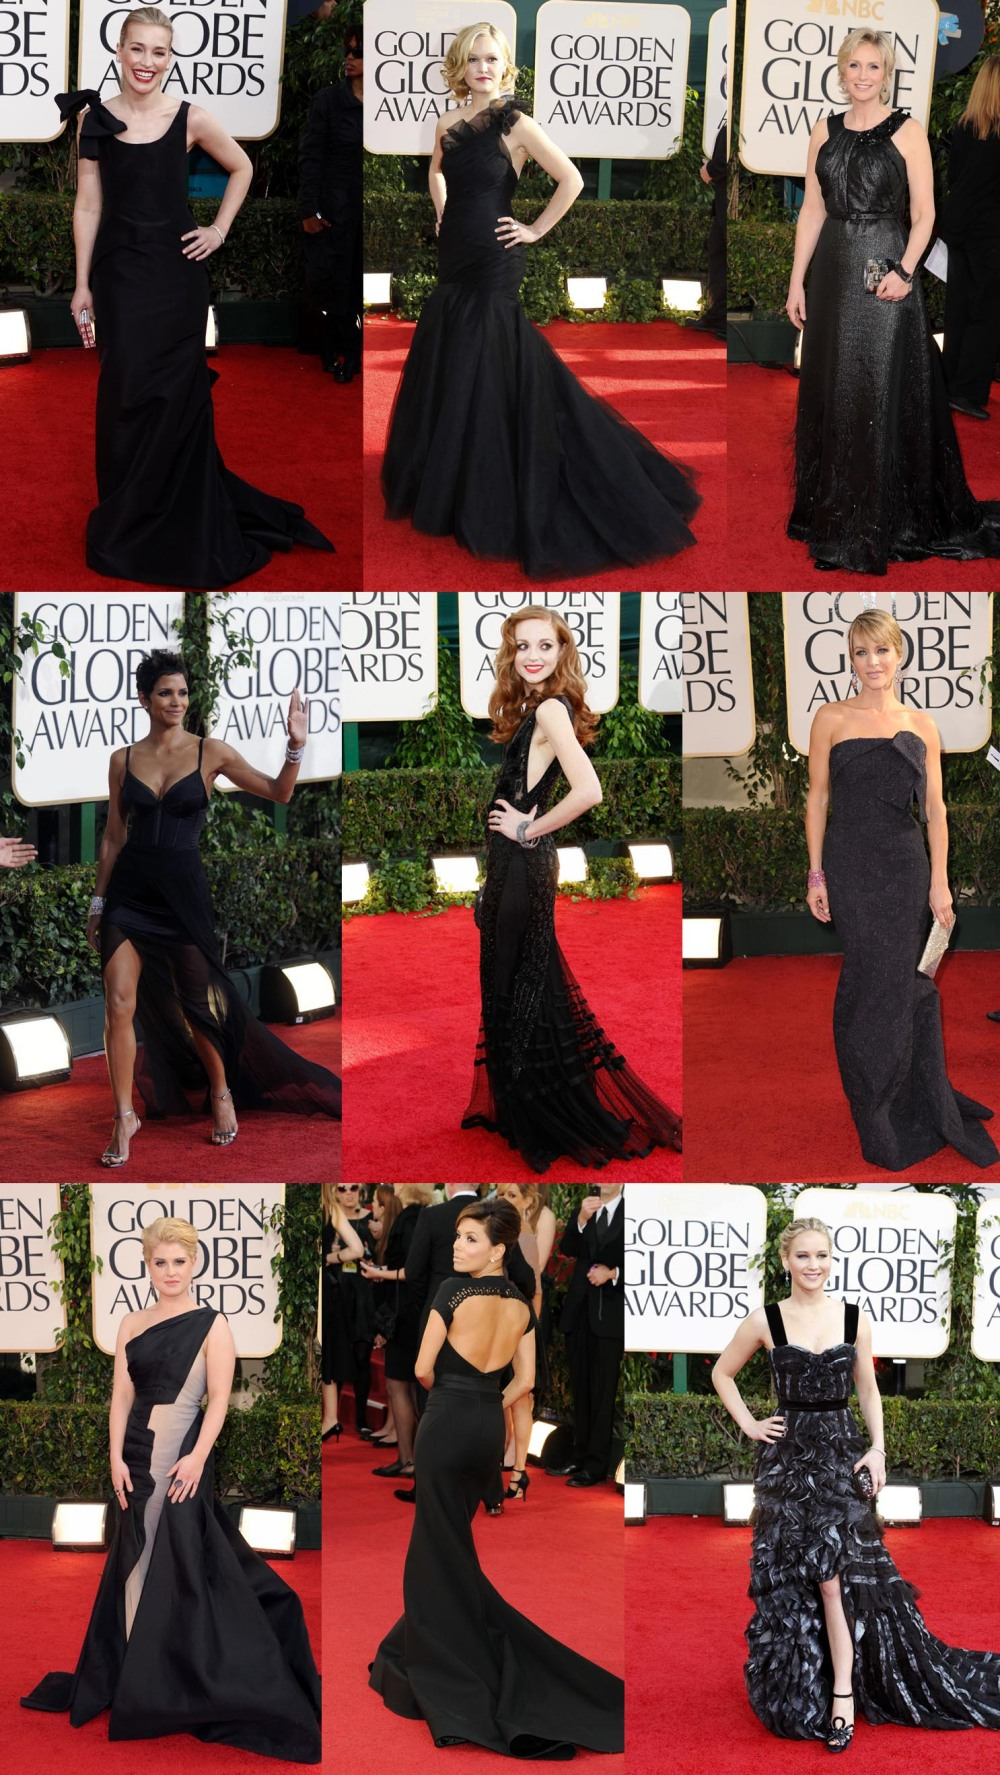 Vestidos Pretos Golden Globes 2011